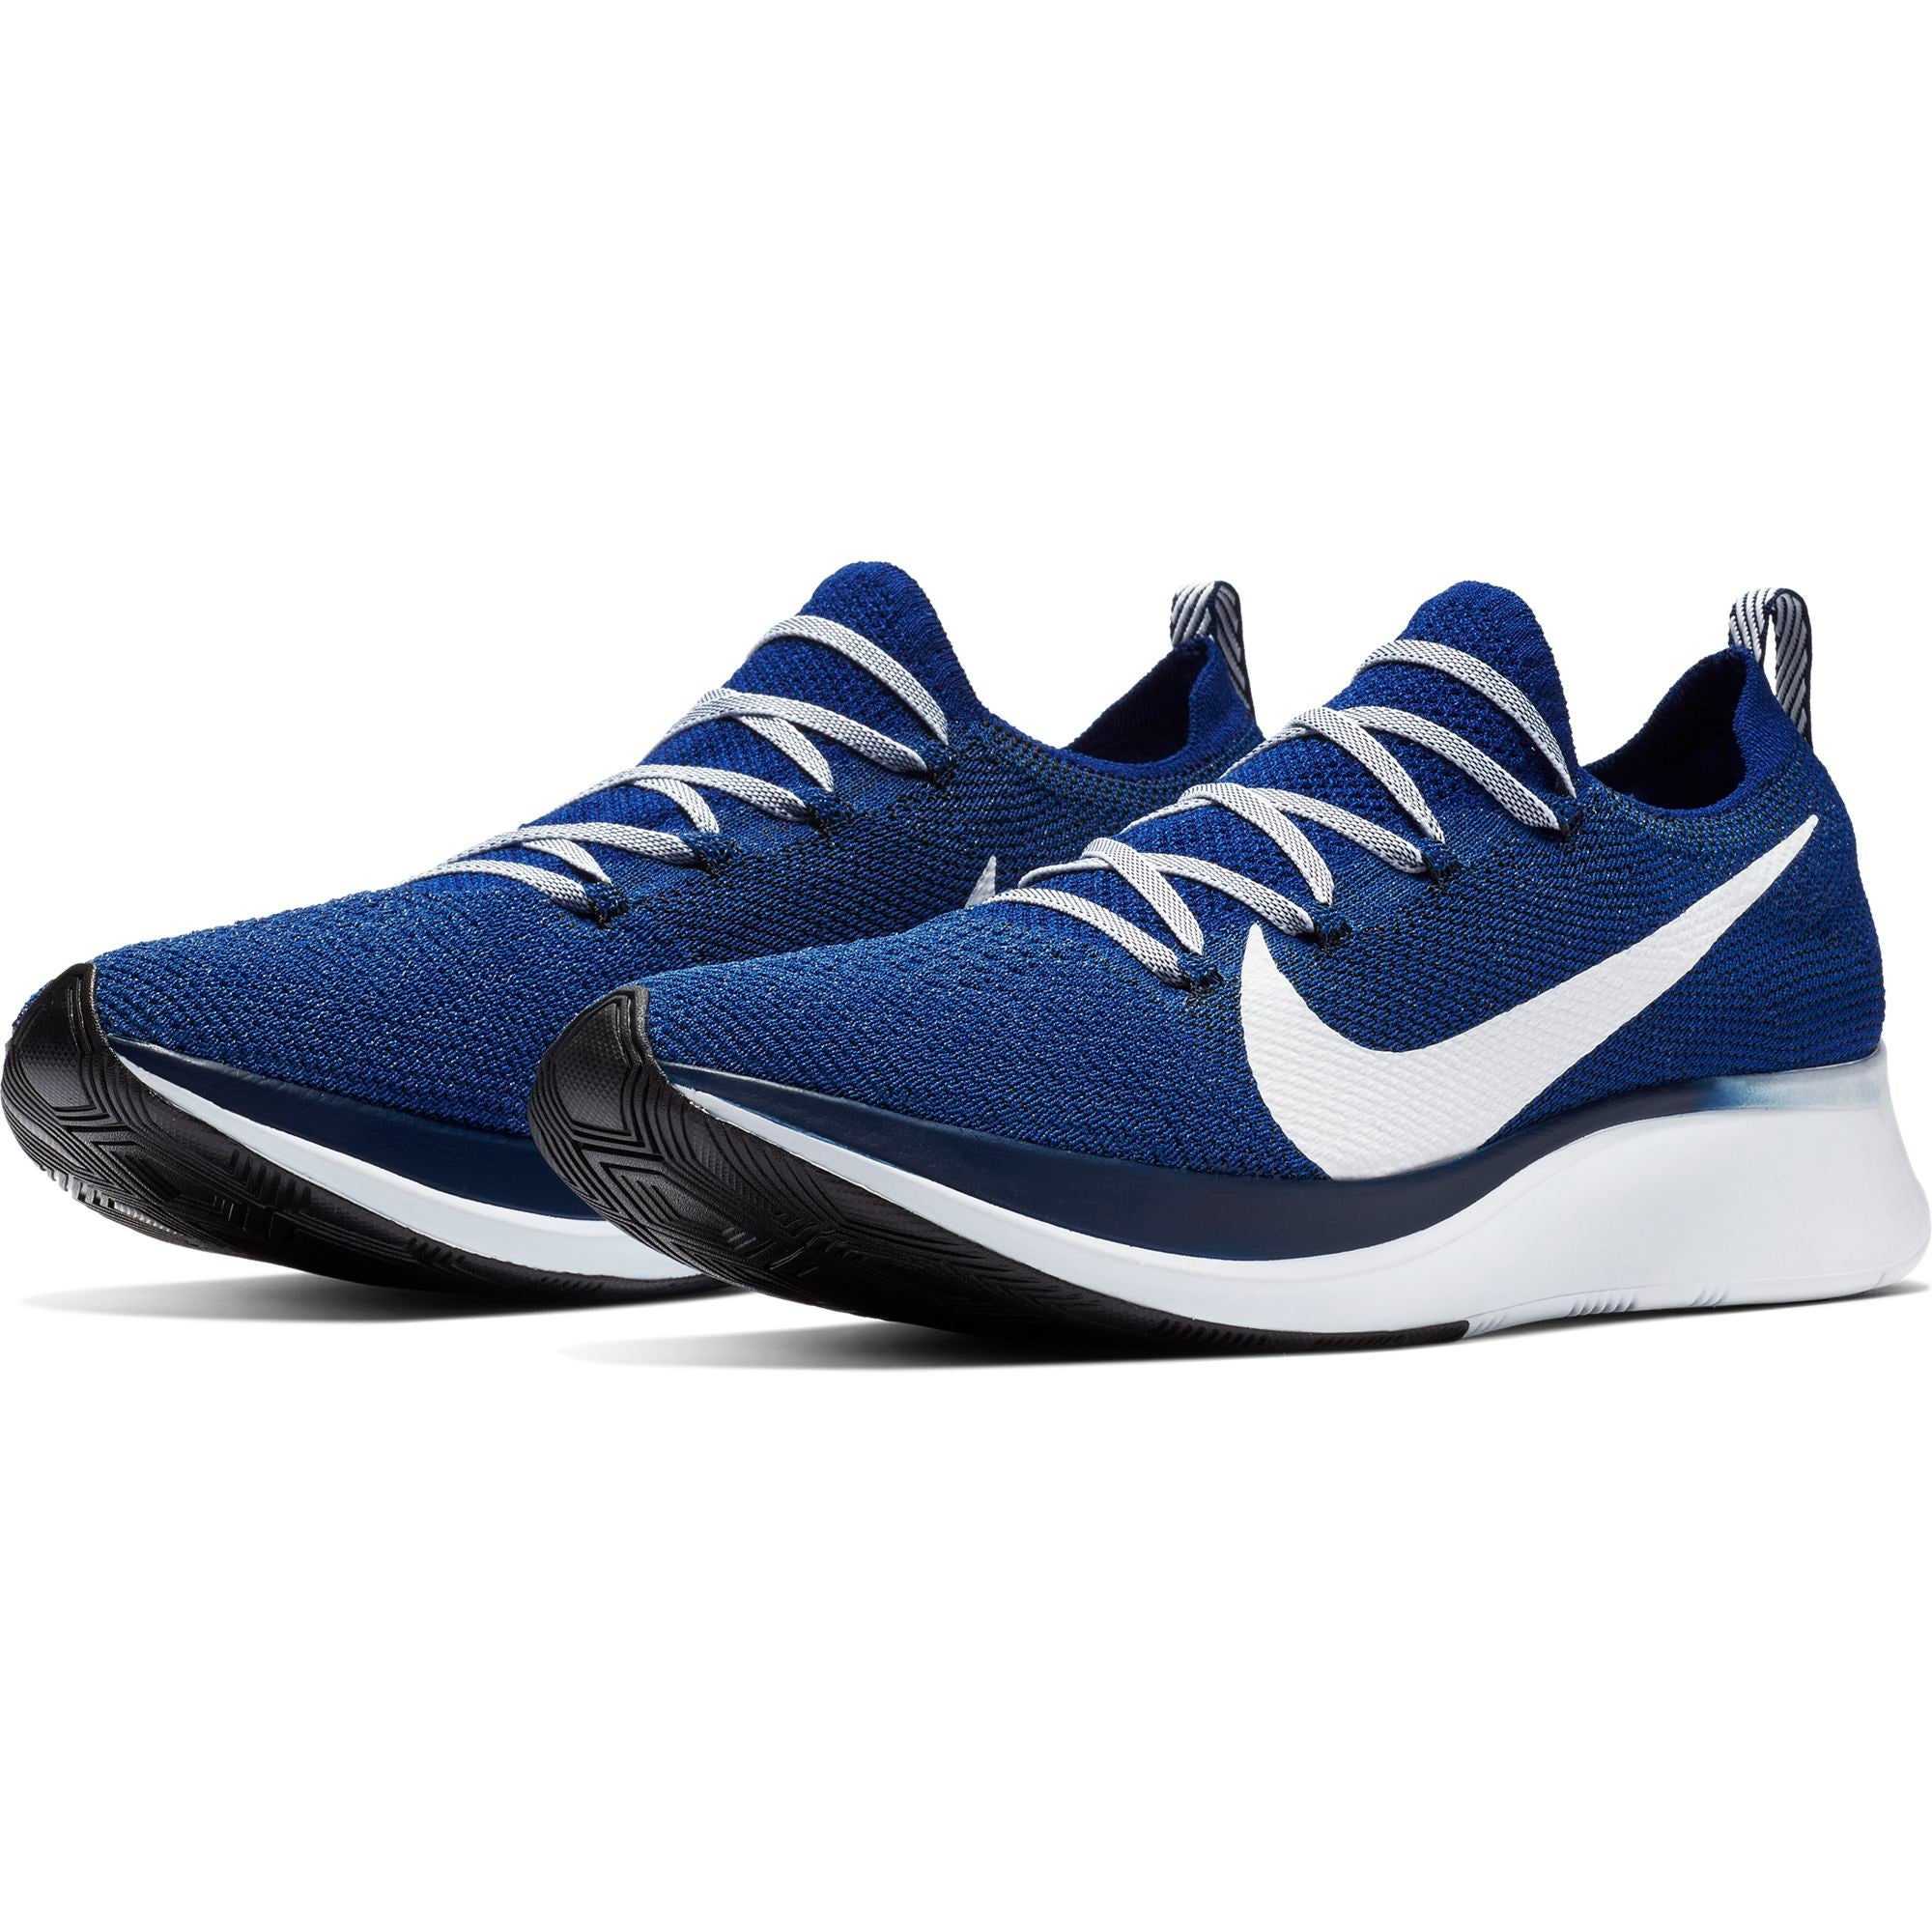 c8a74cb615d ... Men s Zoom Fly Flyknit Running Shoes - Deep Royal Blue Void White ...